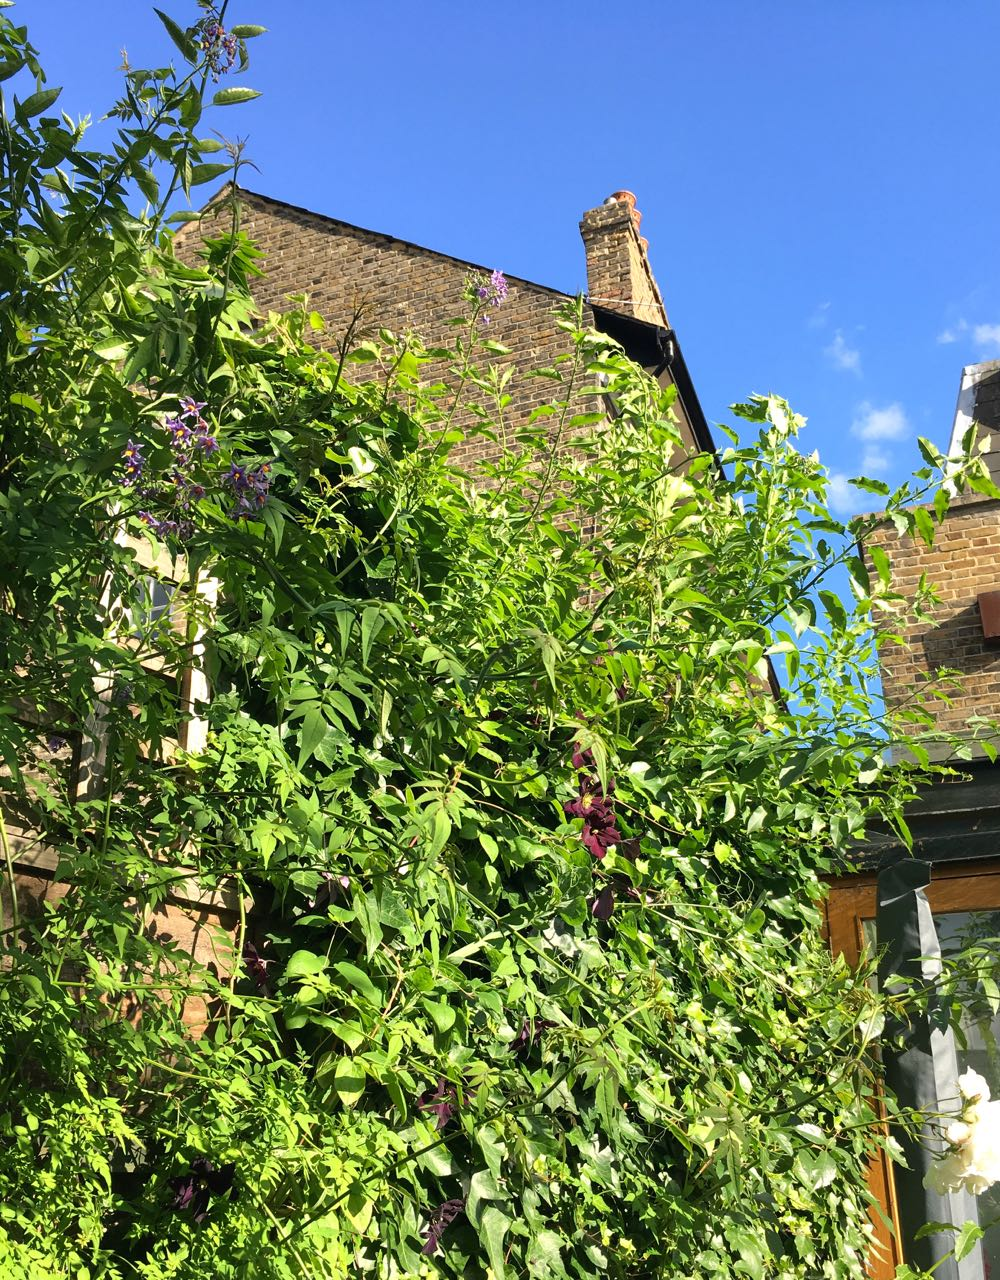 Rampant climbers, overgrown ivy and blue skies